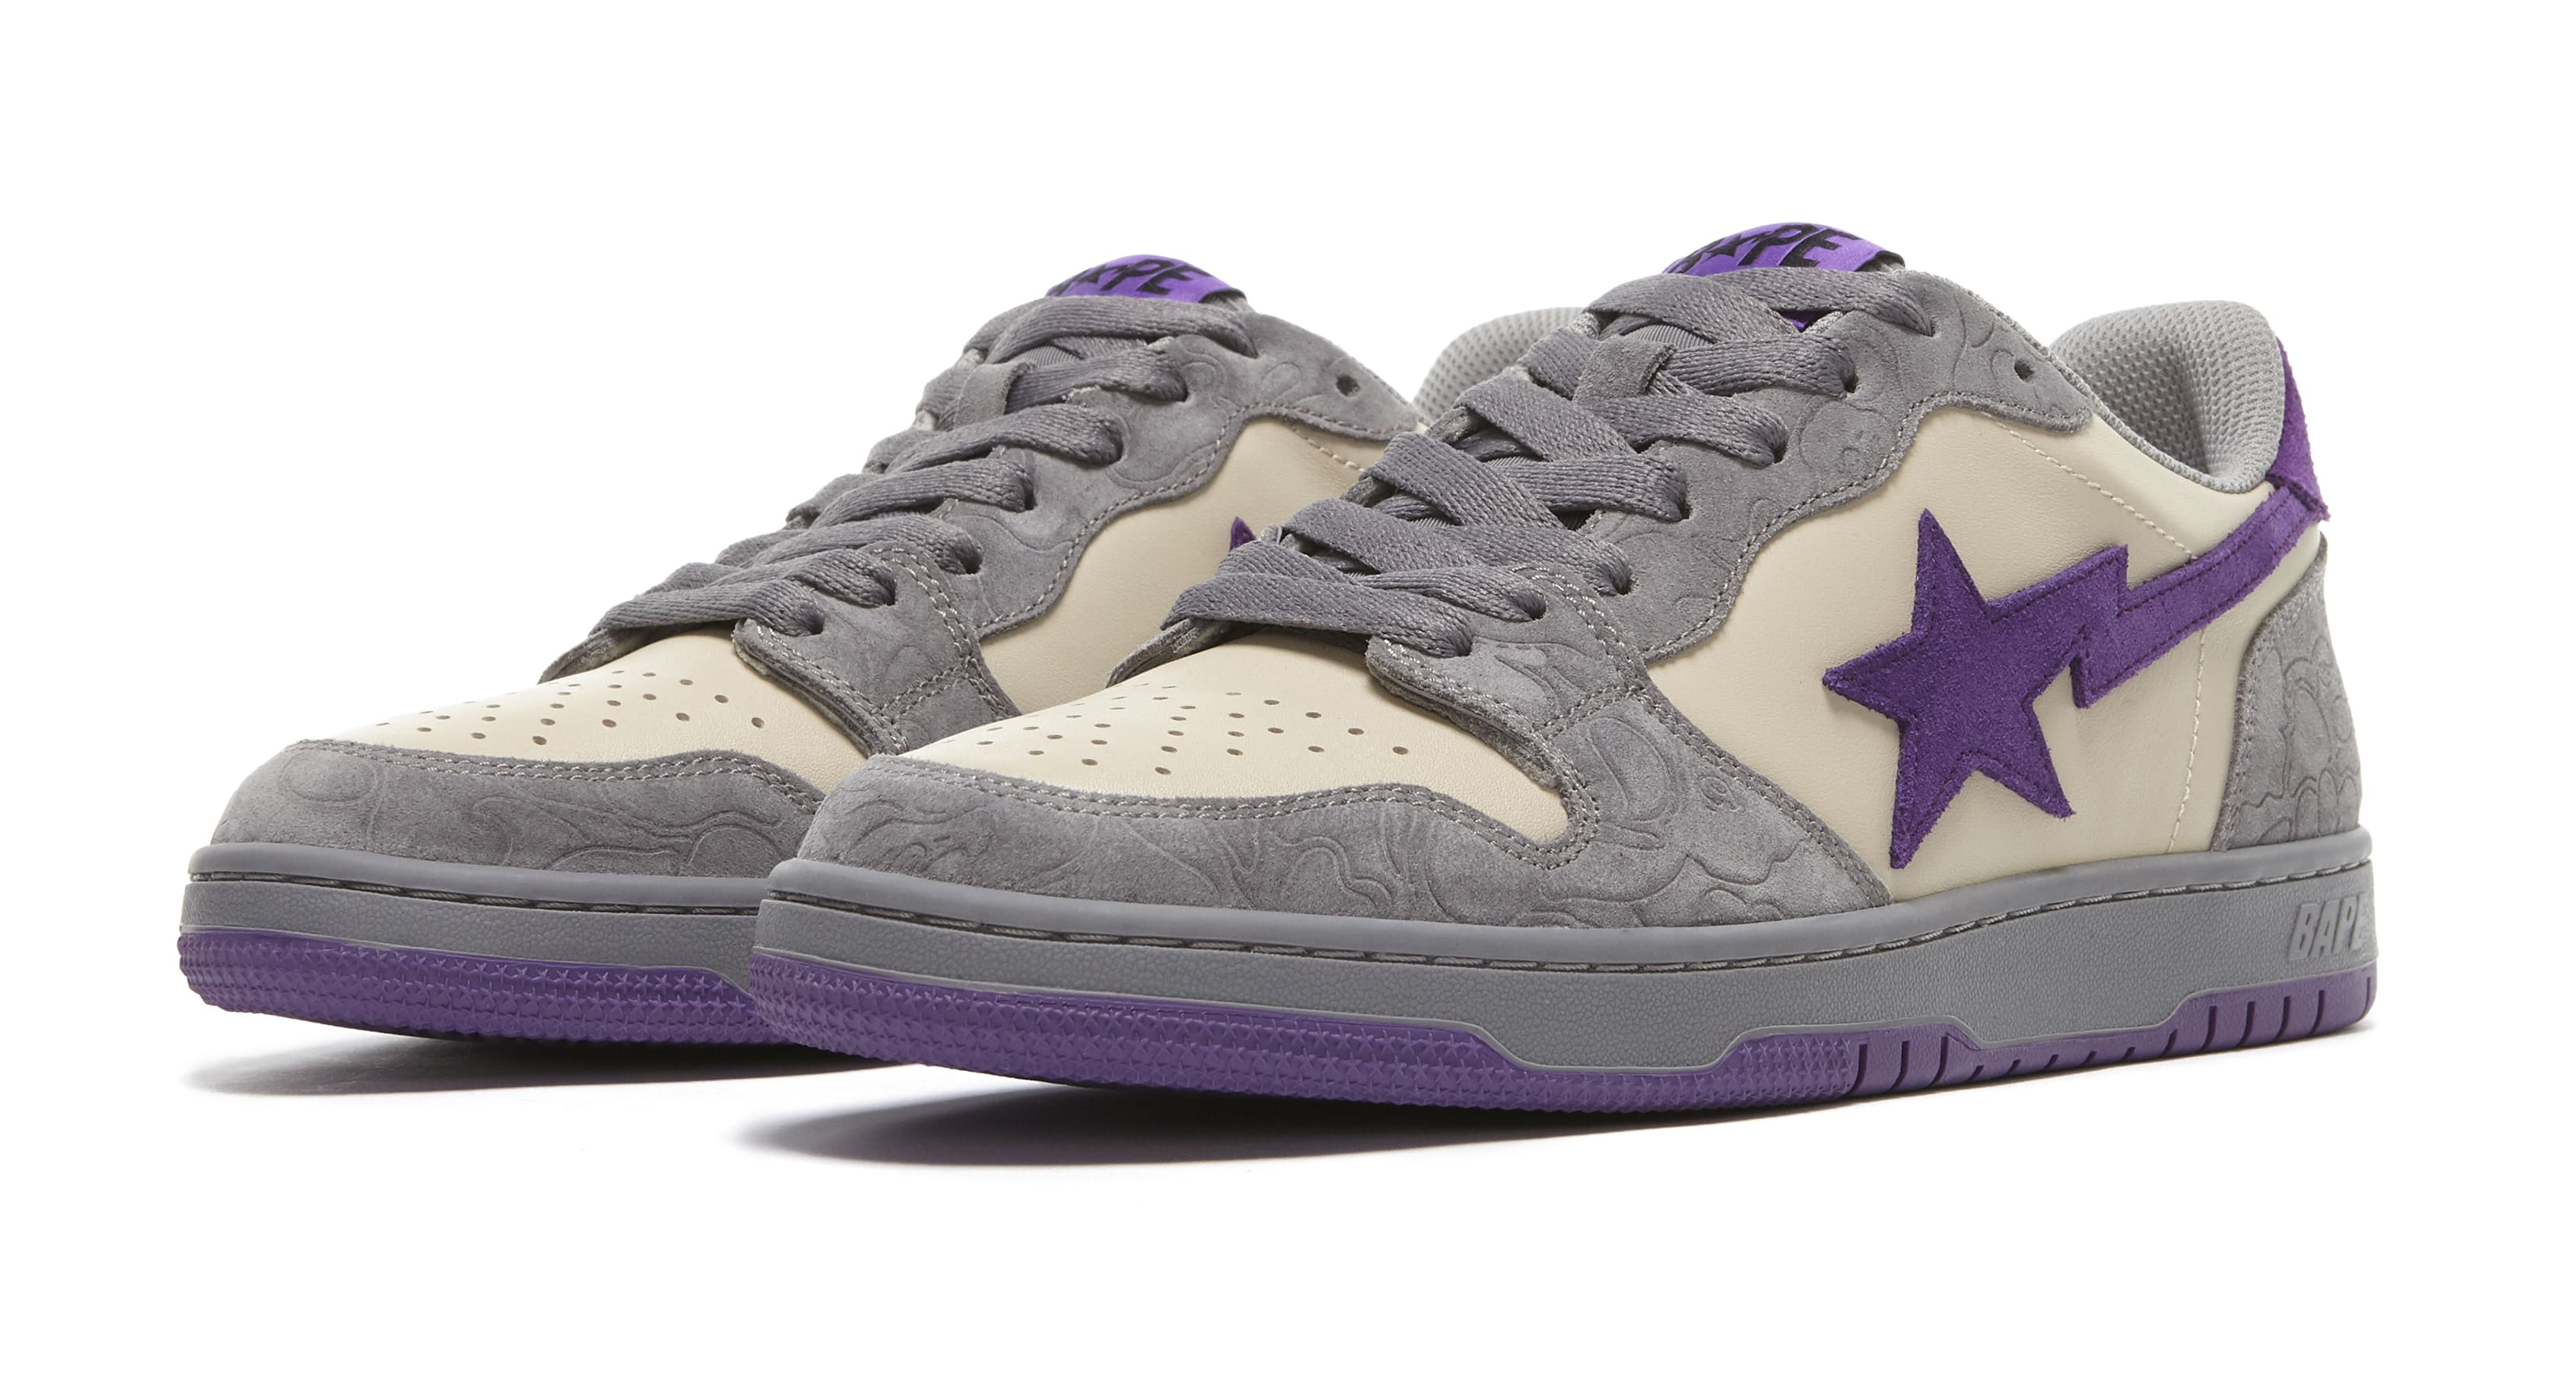 Bape Court Sta Mist Grey and Royal Purple Pair